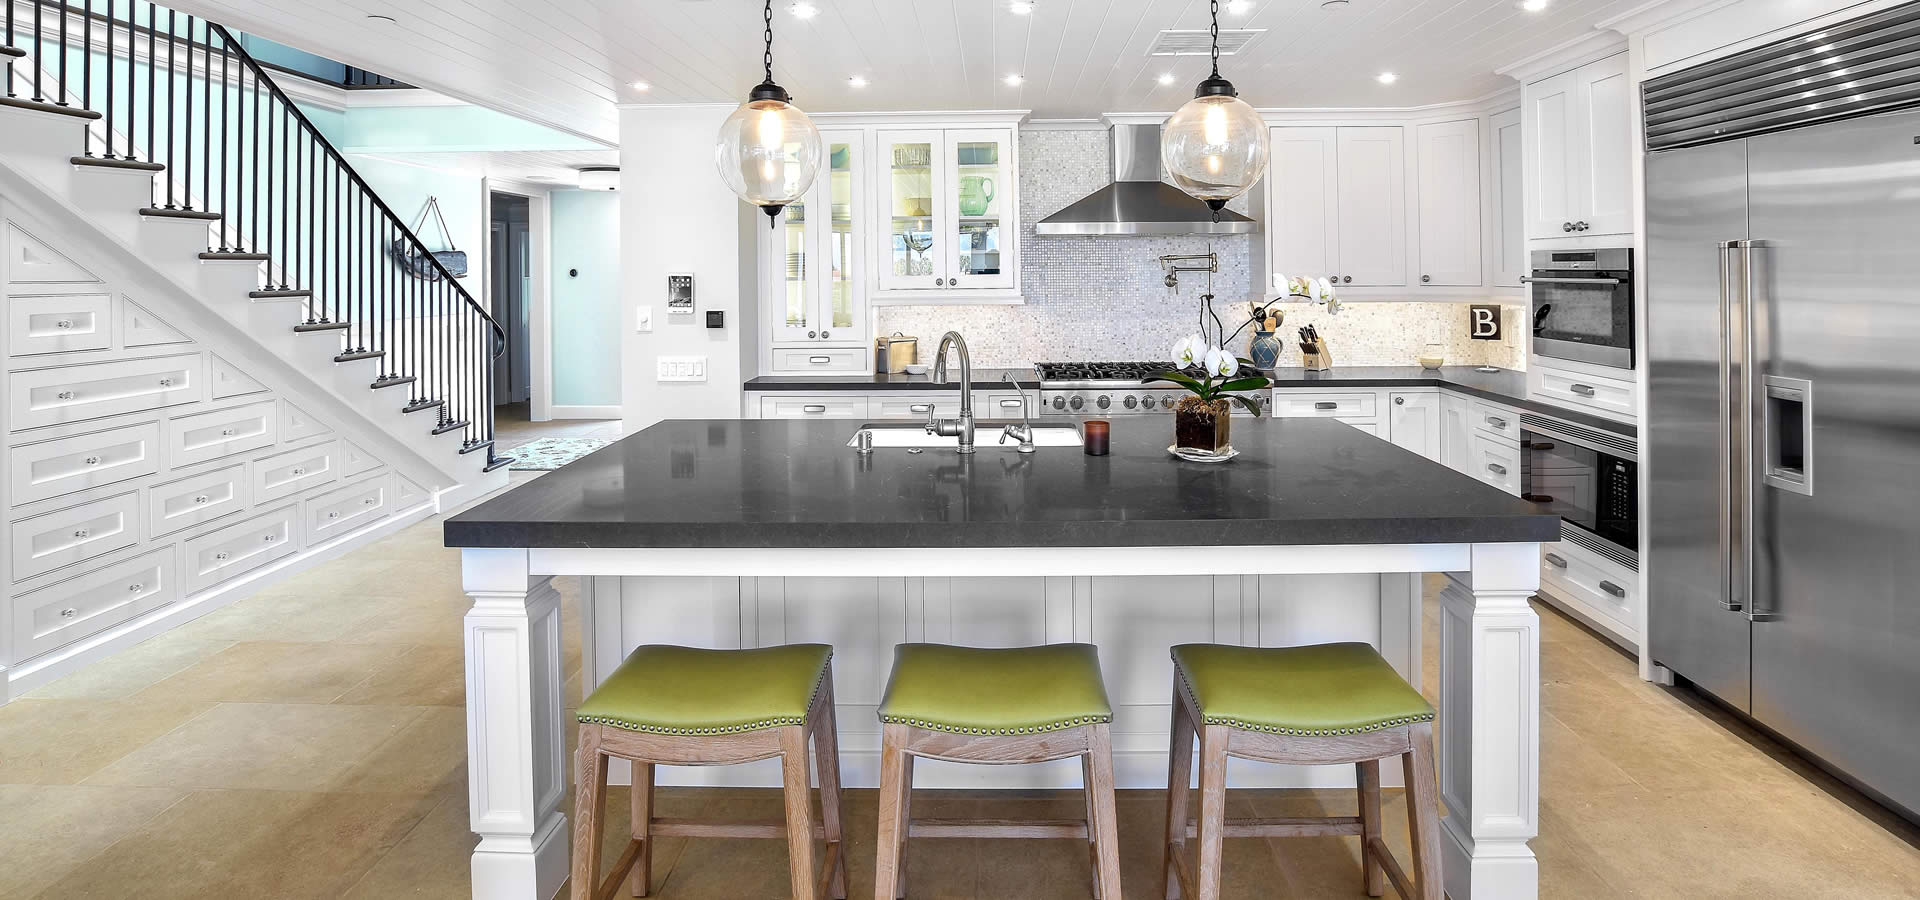 Modern kitchen design and remodel by Preferred Kitchen and Bath